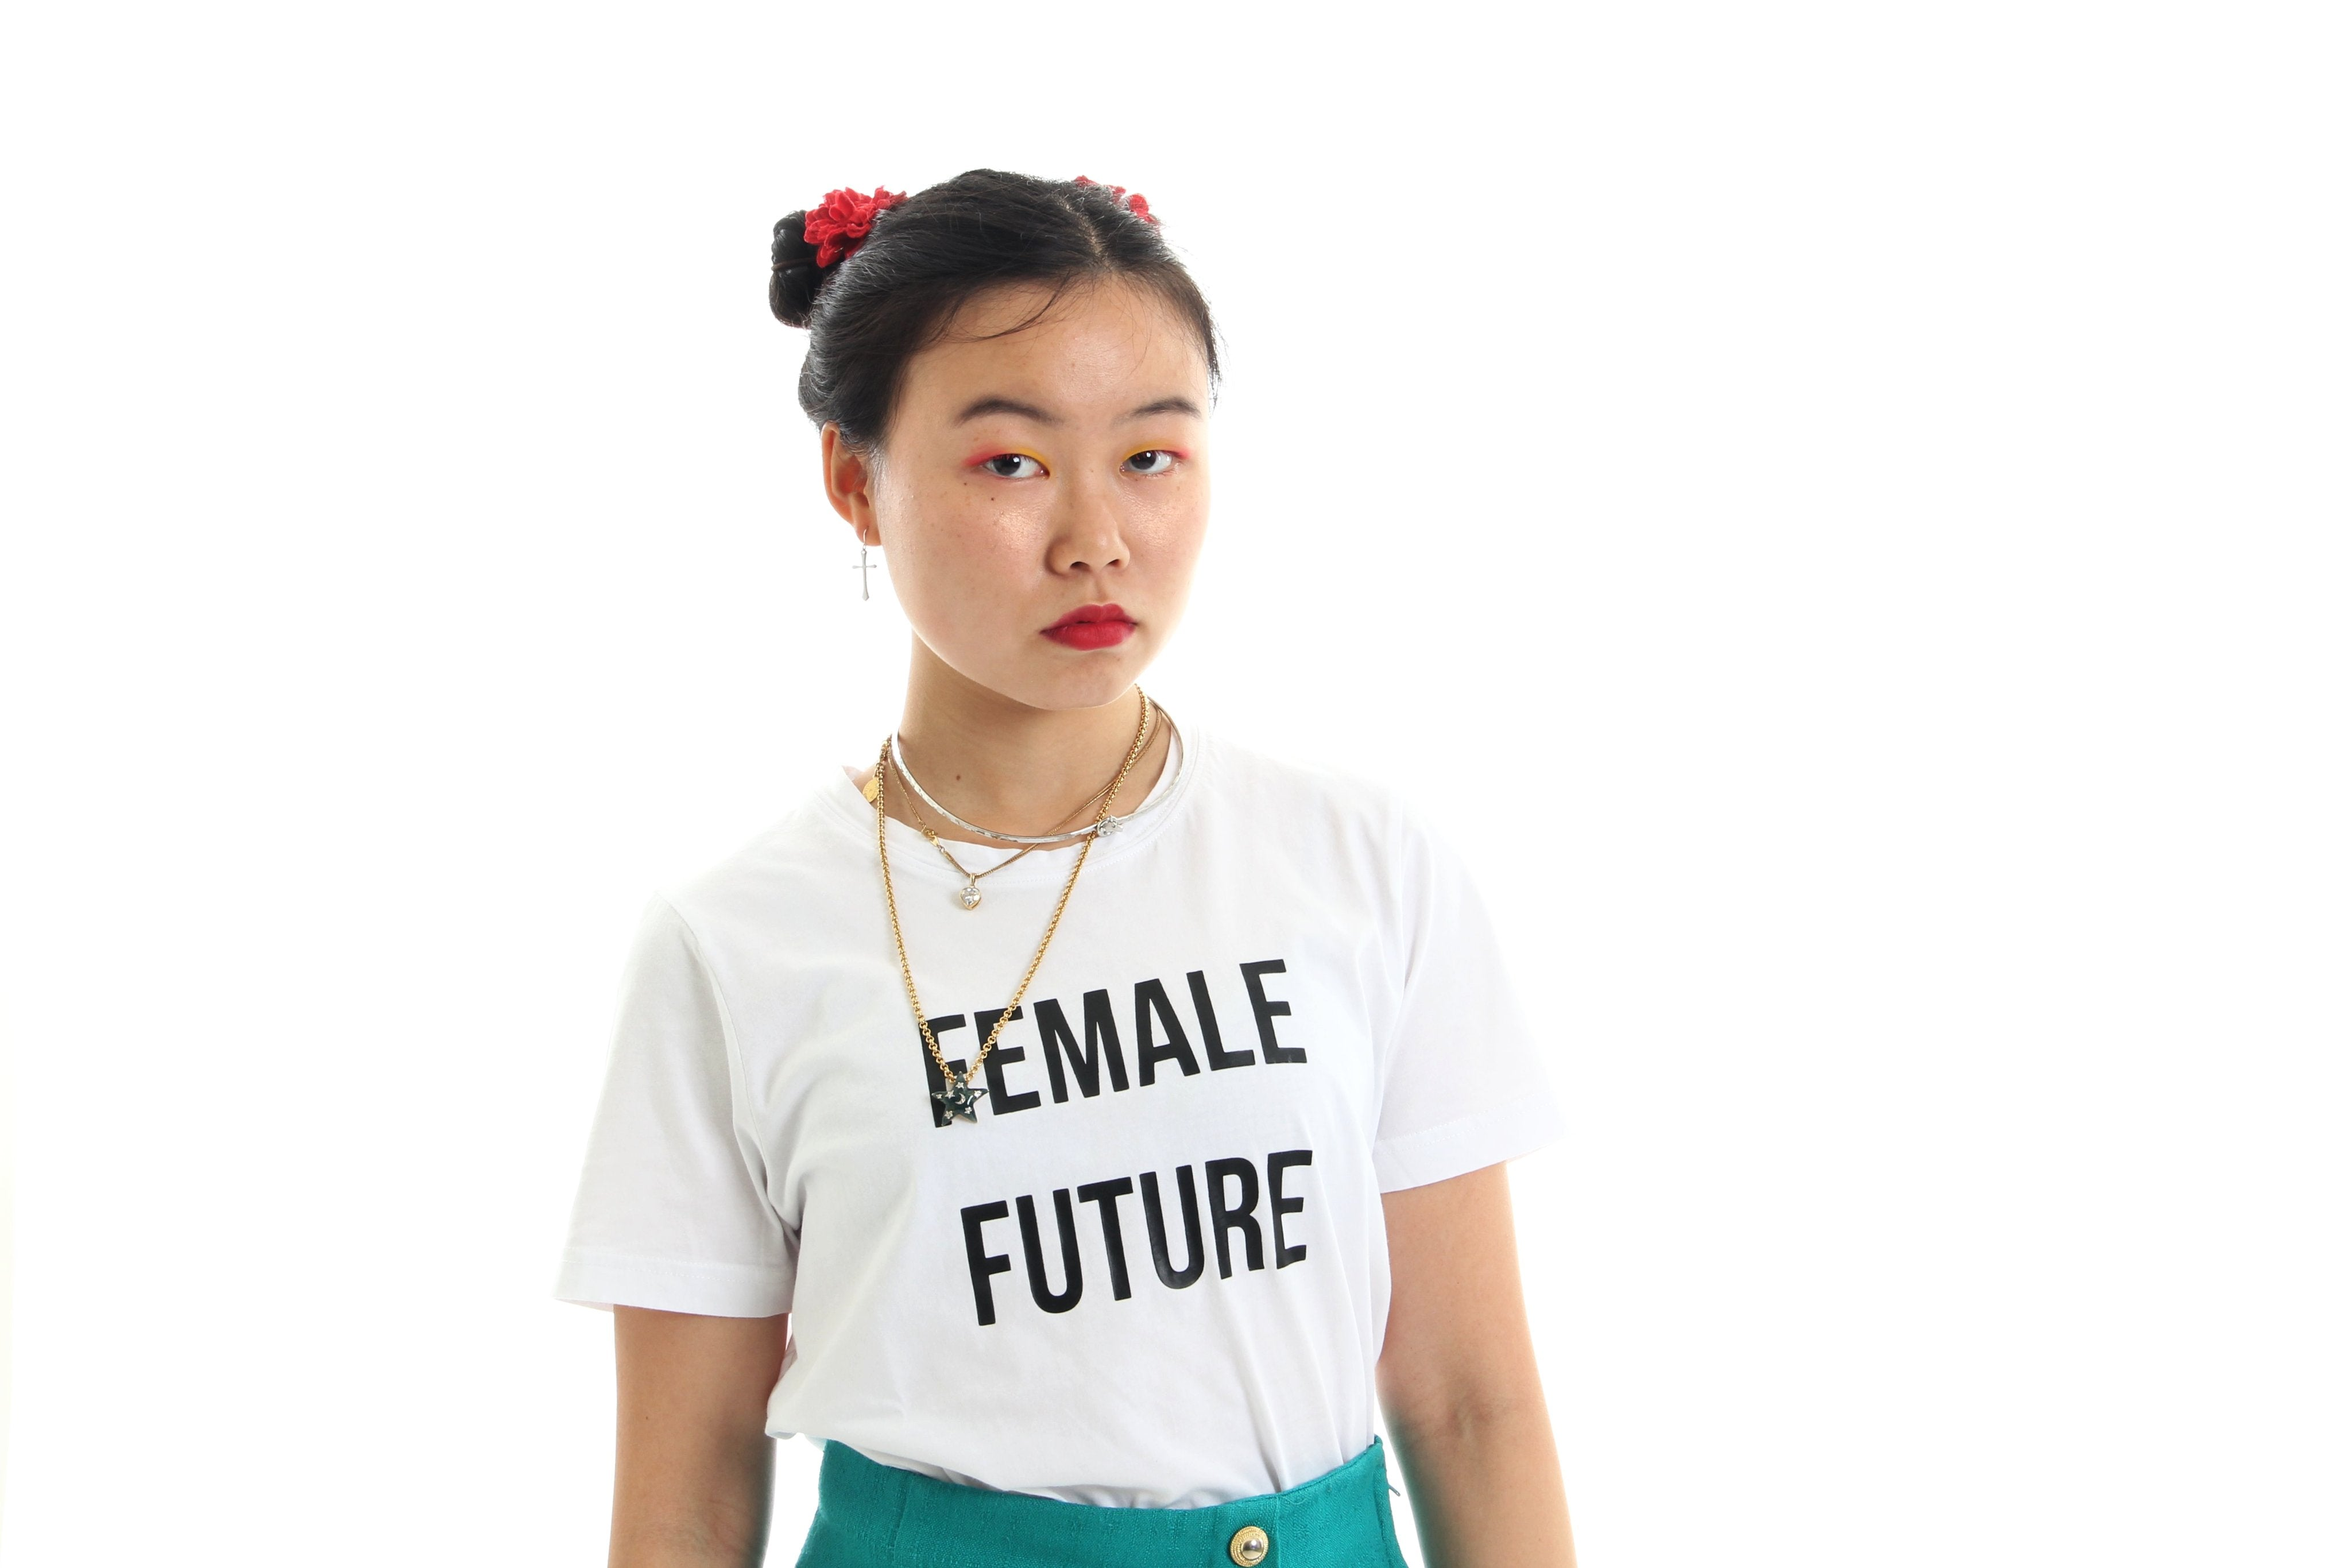 Female Future Tee